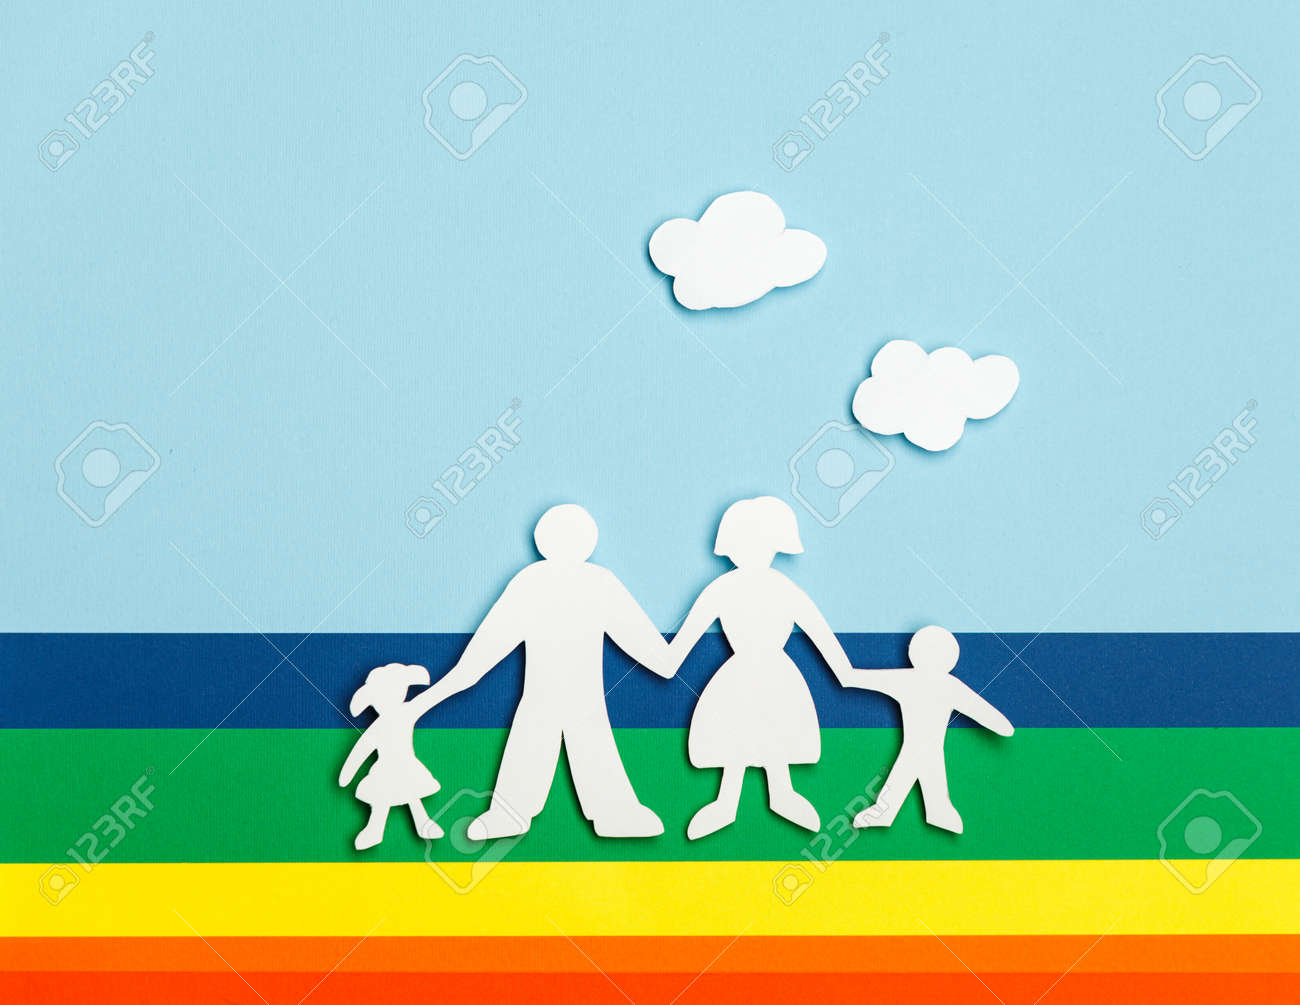 Close Up Of Happy Family Paper Dolls On Colorful Background Under Cutout Clouds Stock